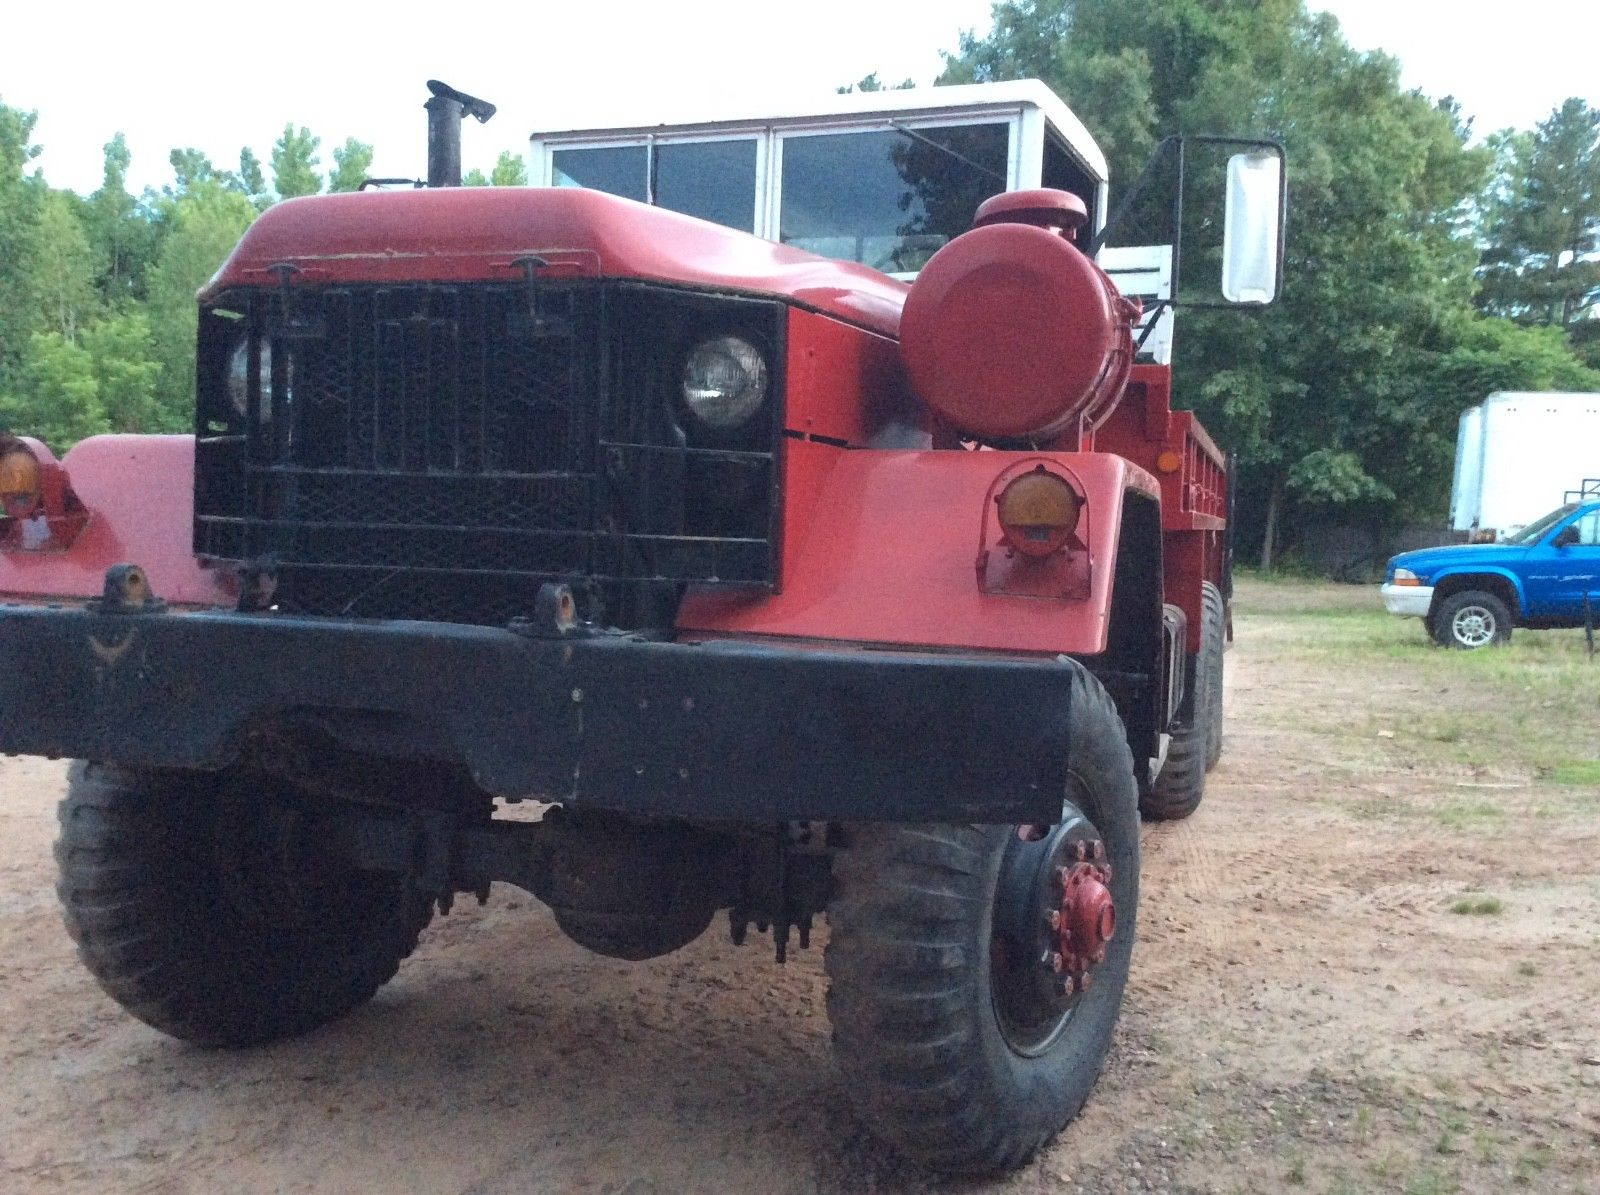 Very clean 1979 Am General M813 5 ton military